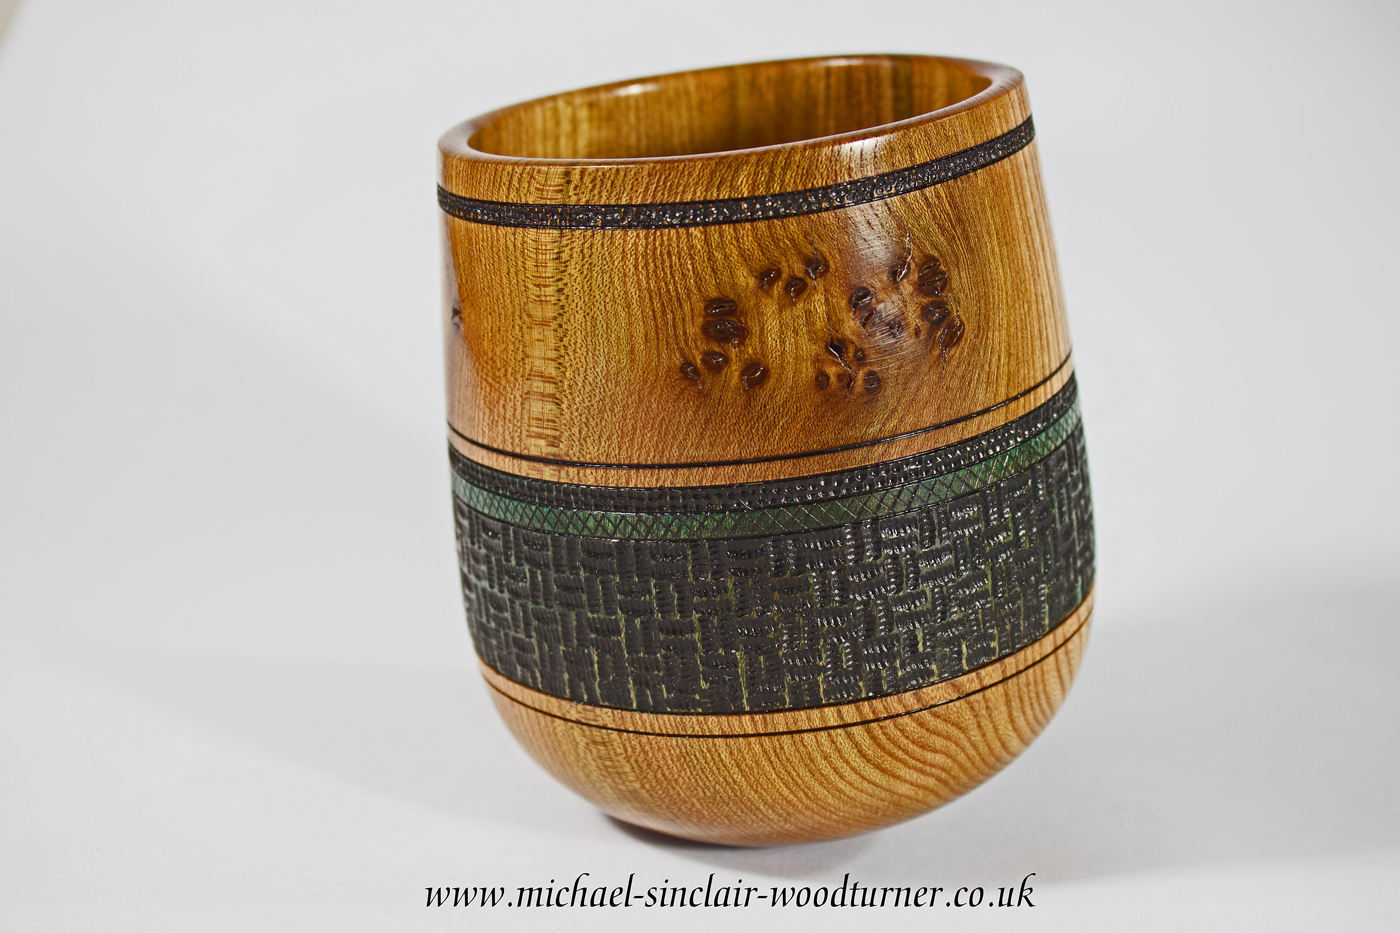 Wooden turned 'Rocking' bowls